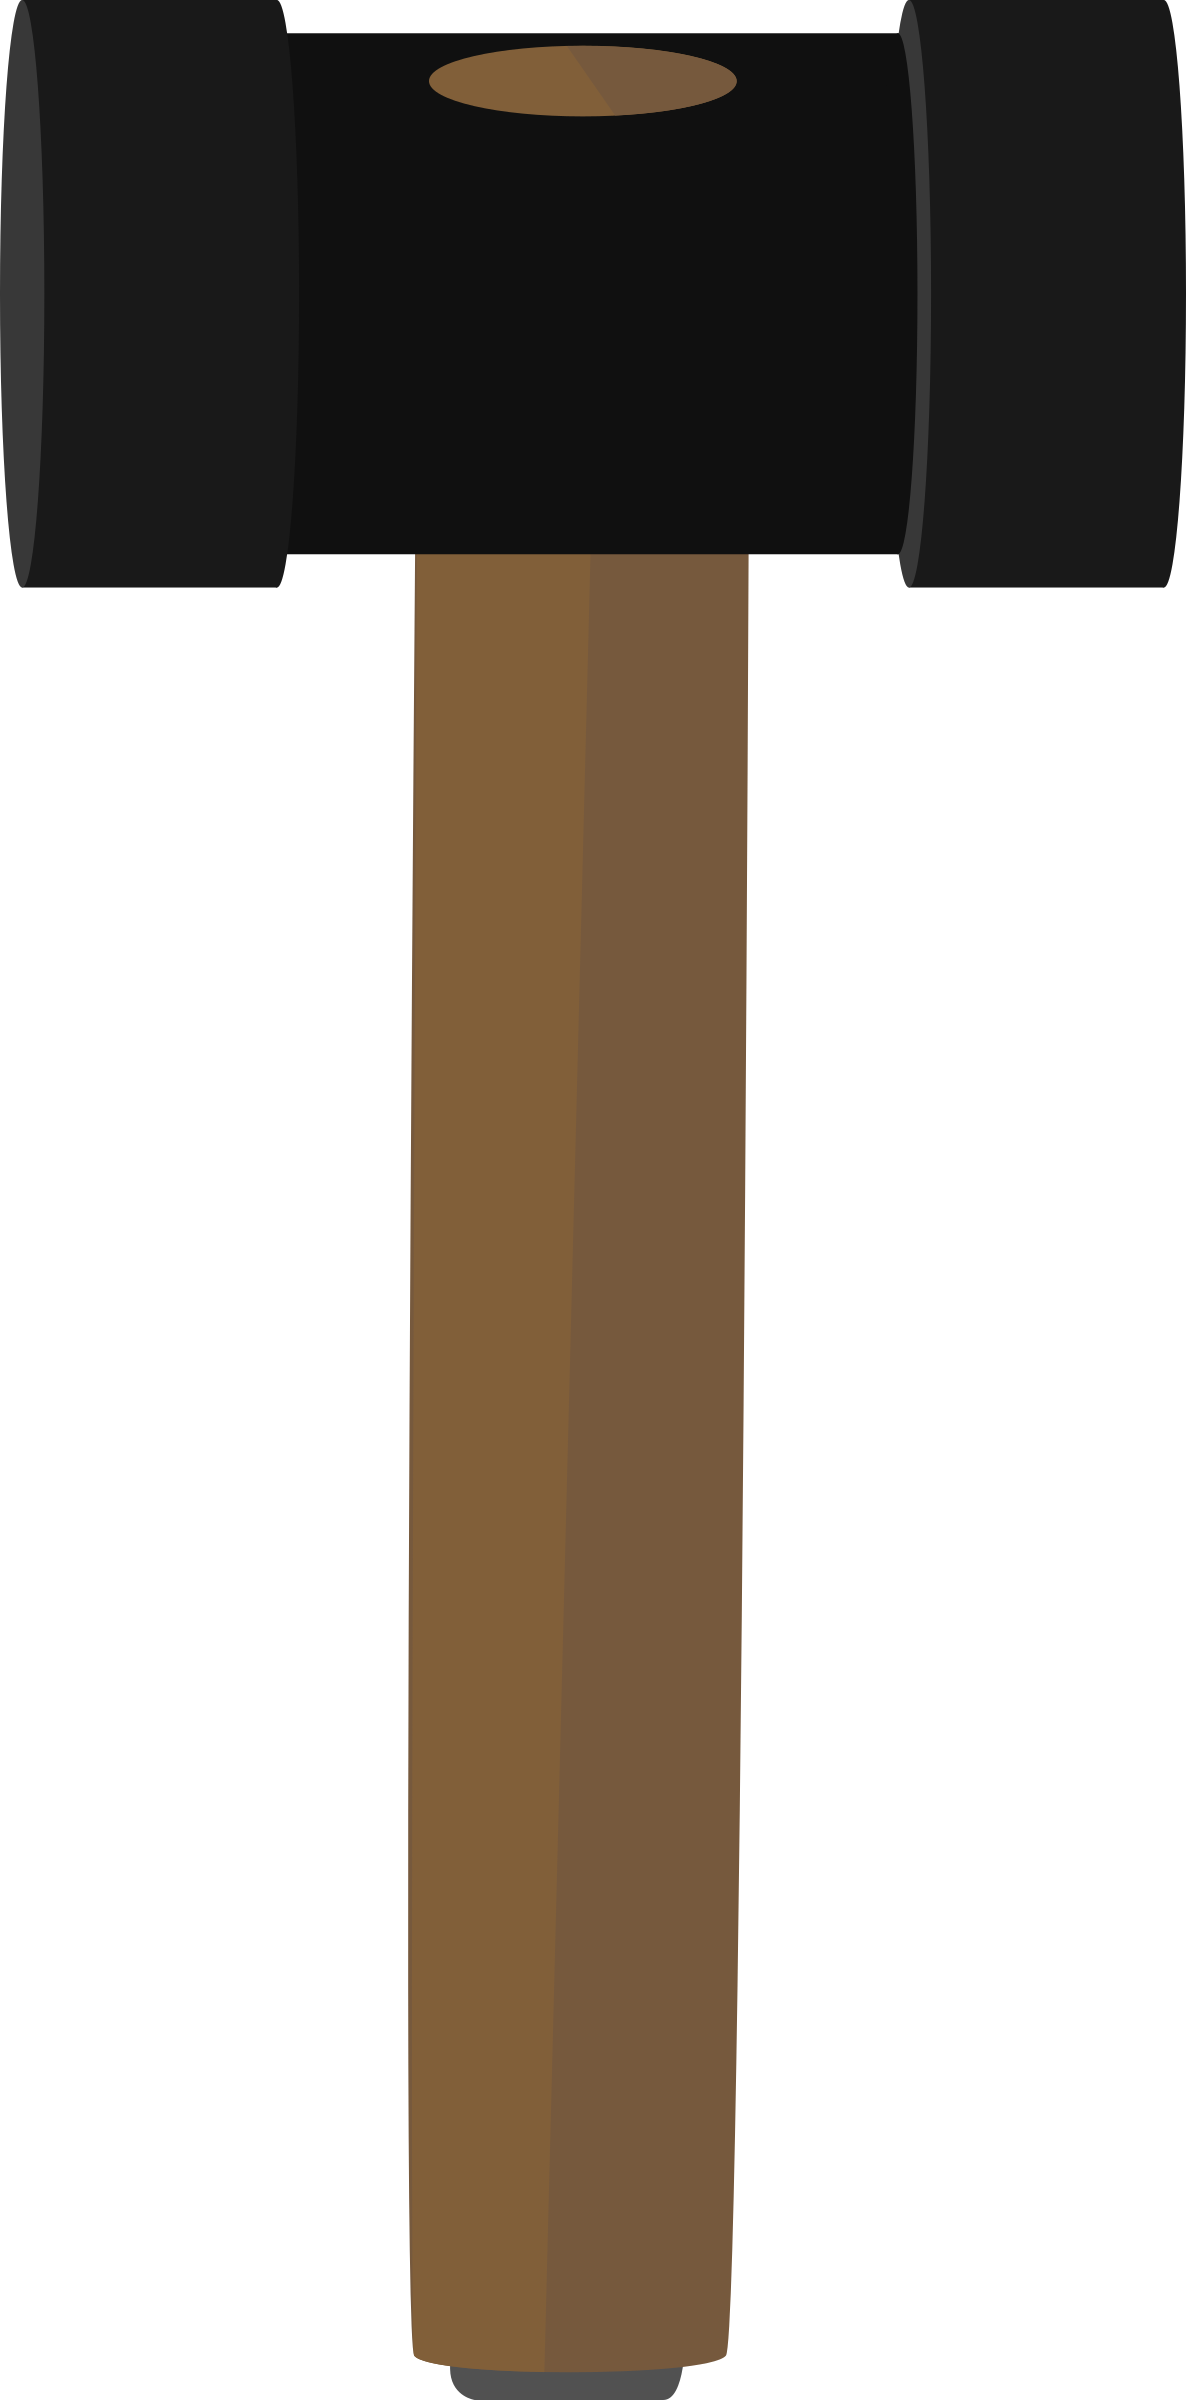 Tool clipart hammer. Simple big image png